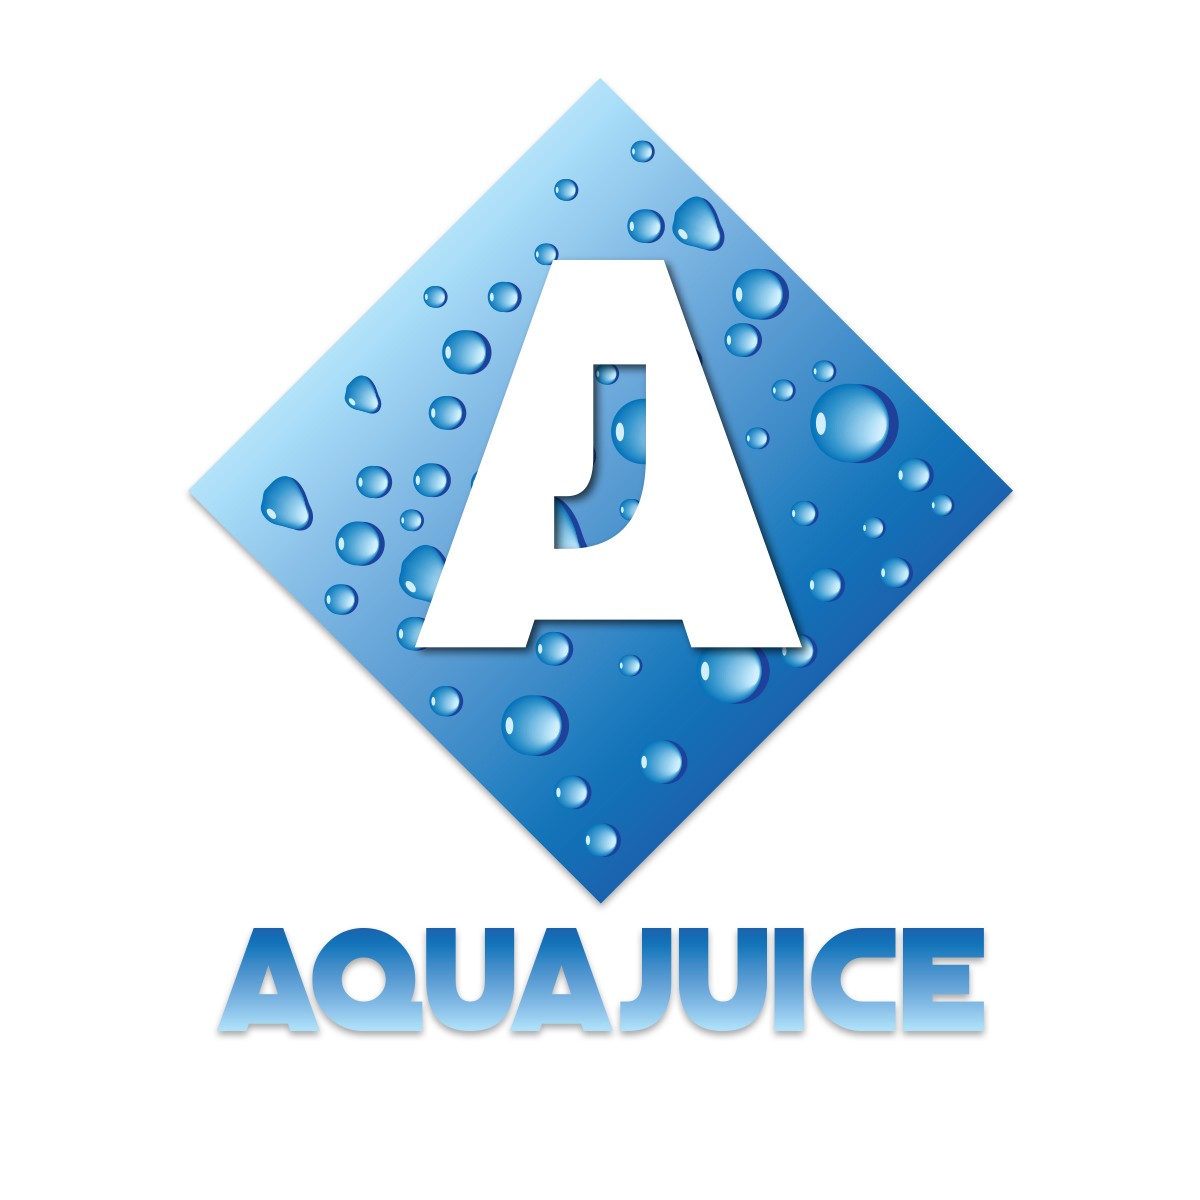 AQUAJUICE Logo.jpg